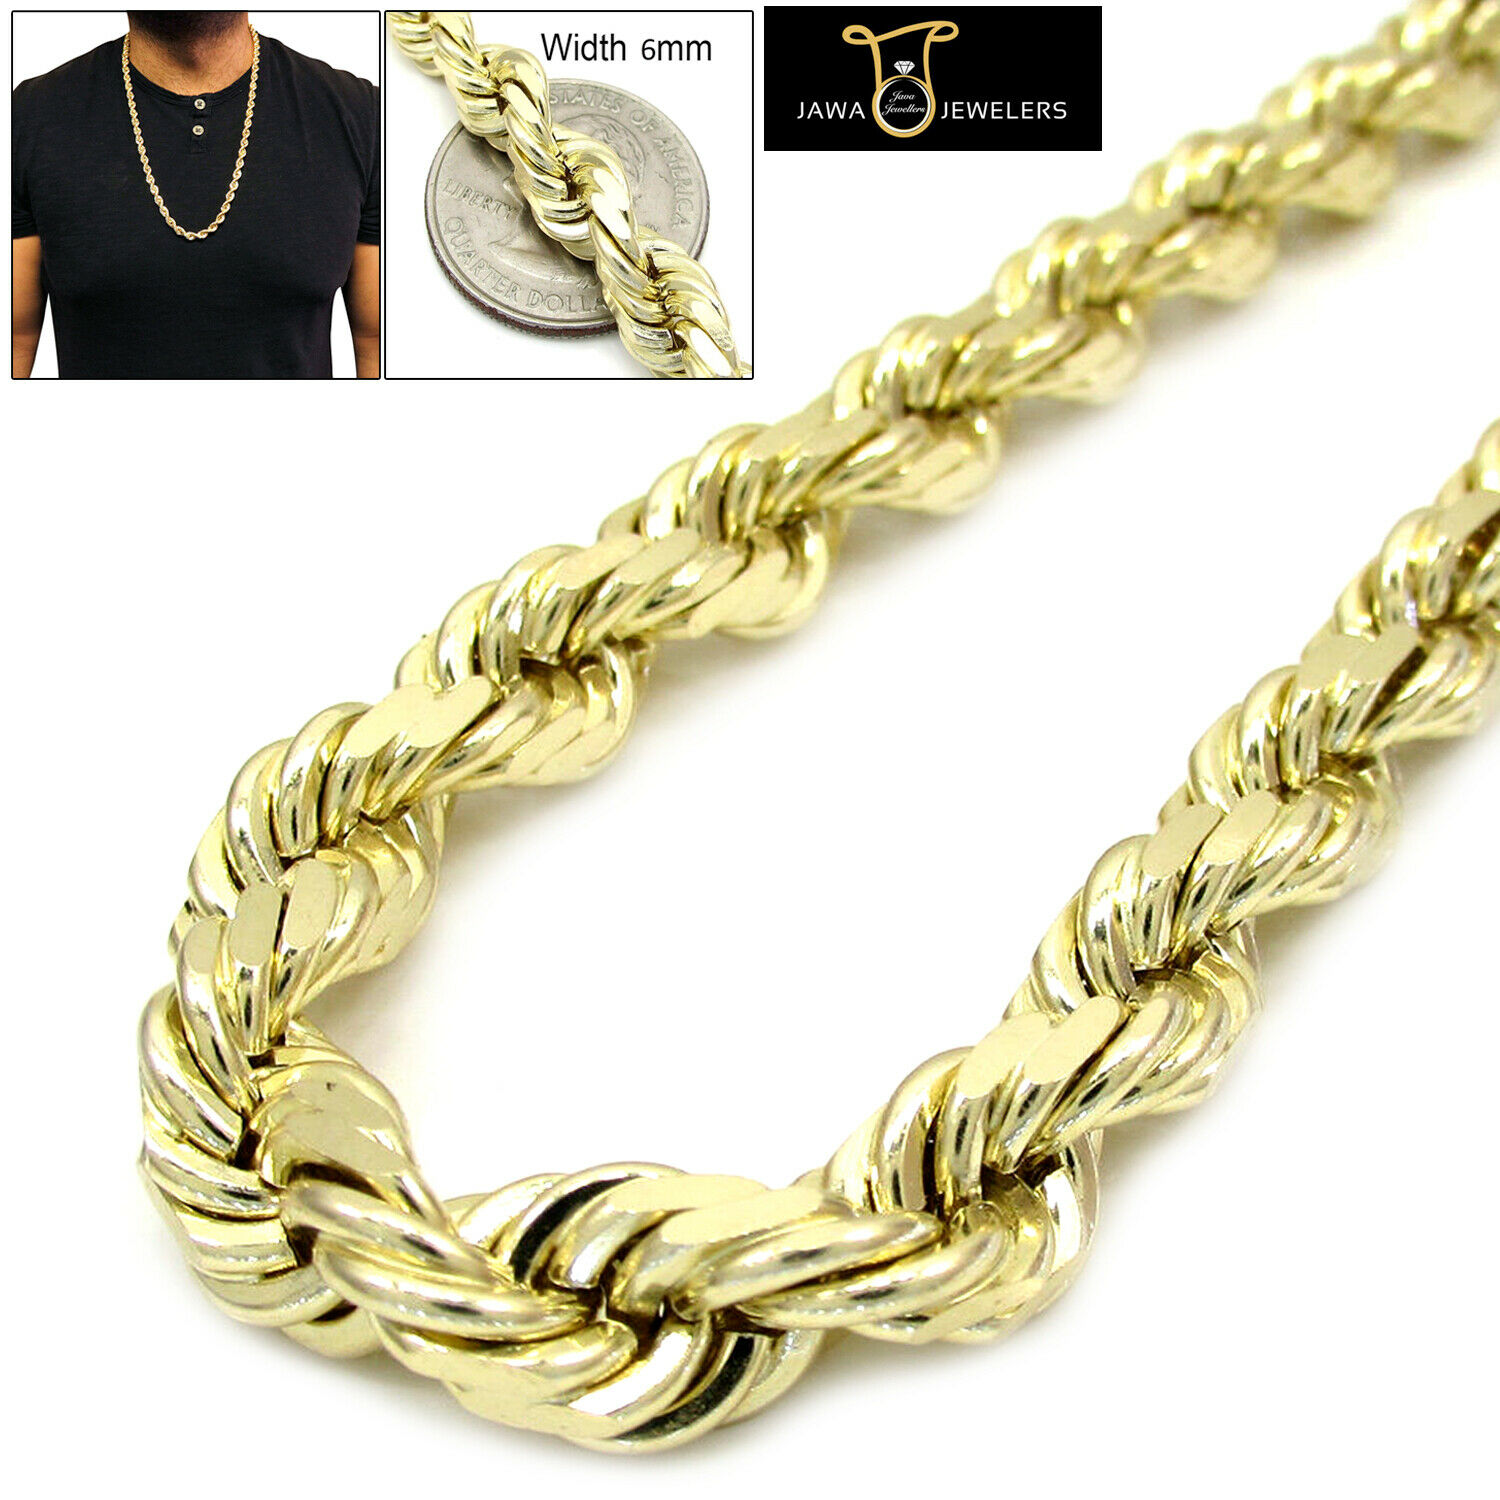 649b13ffb3e21 30 to 22 mm 6 Chain Rope Hollow gold Yellow 14k in Inches Style Cut ...